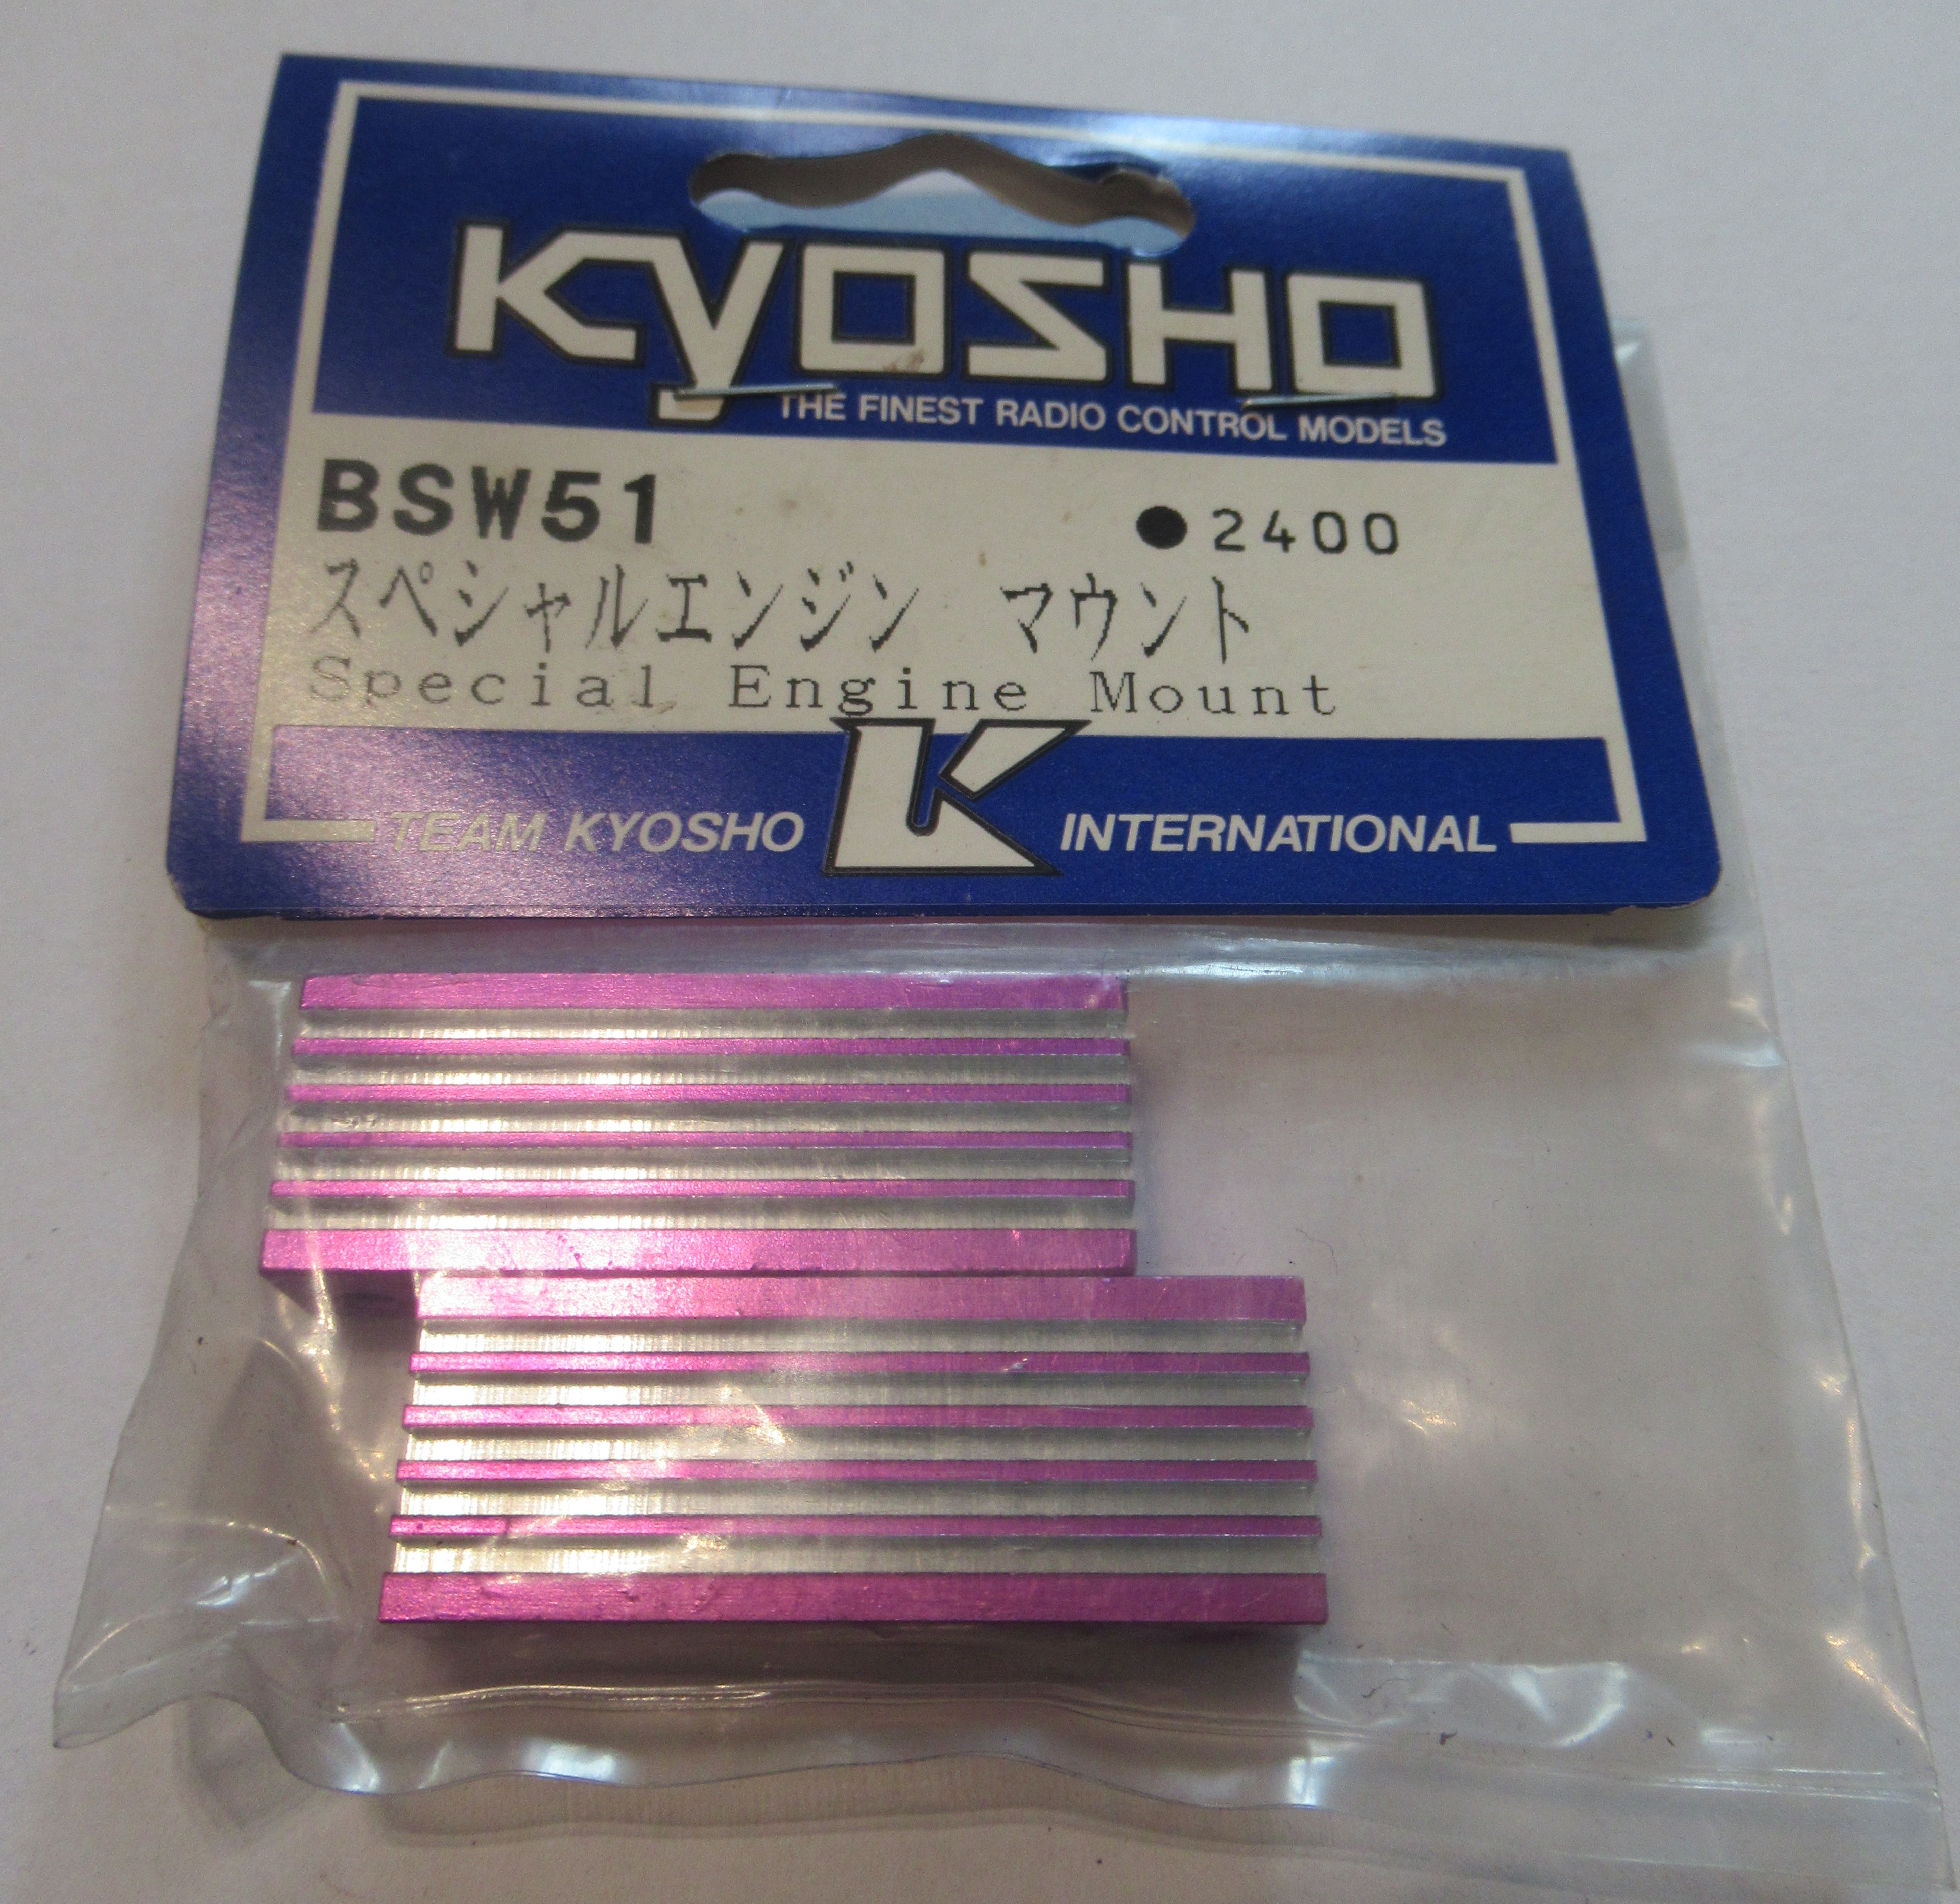 Kyosho BSW51 Special Engine Mount